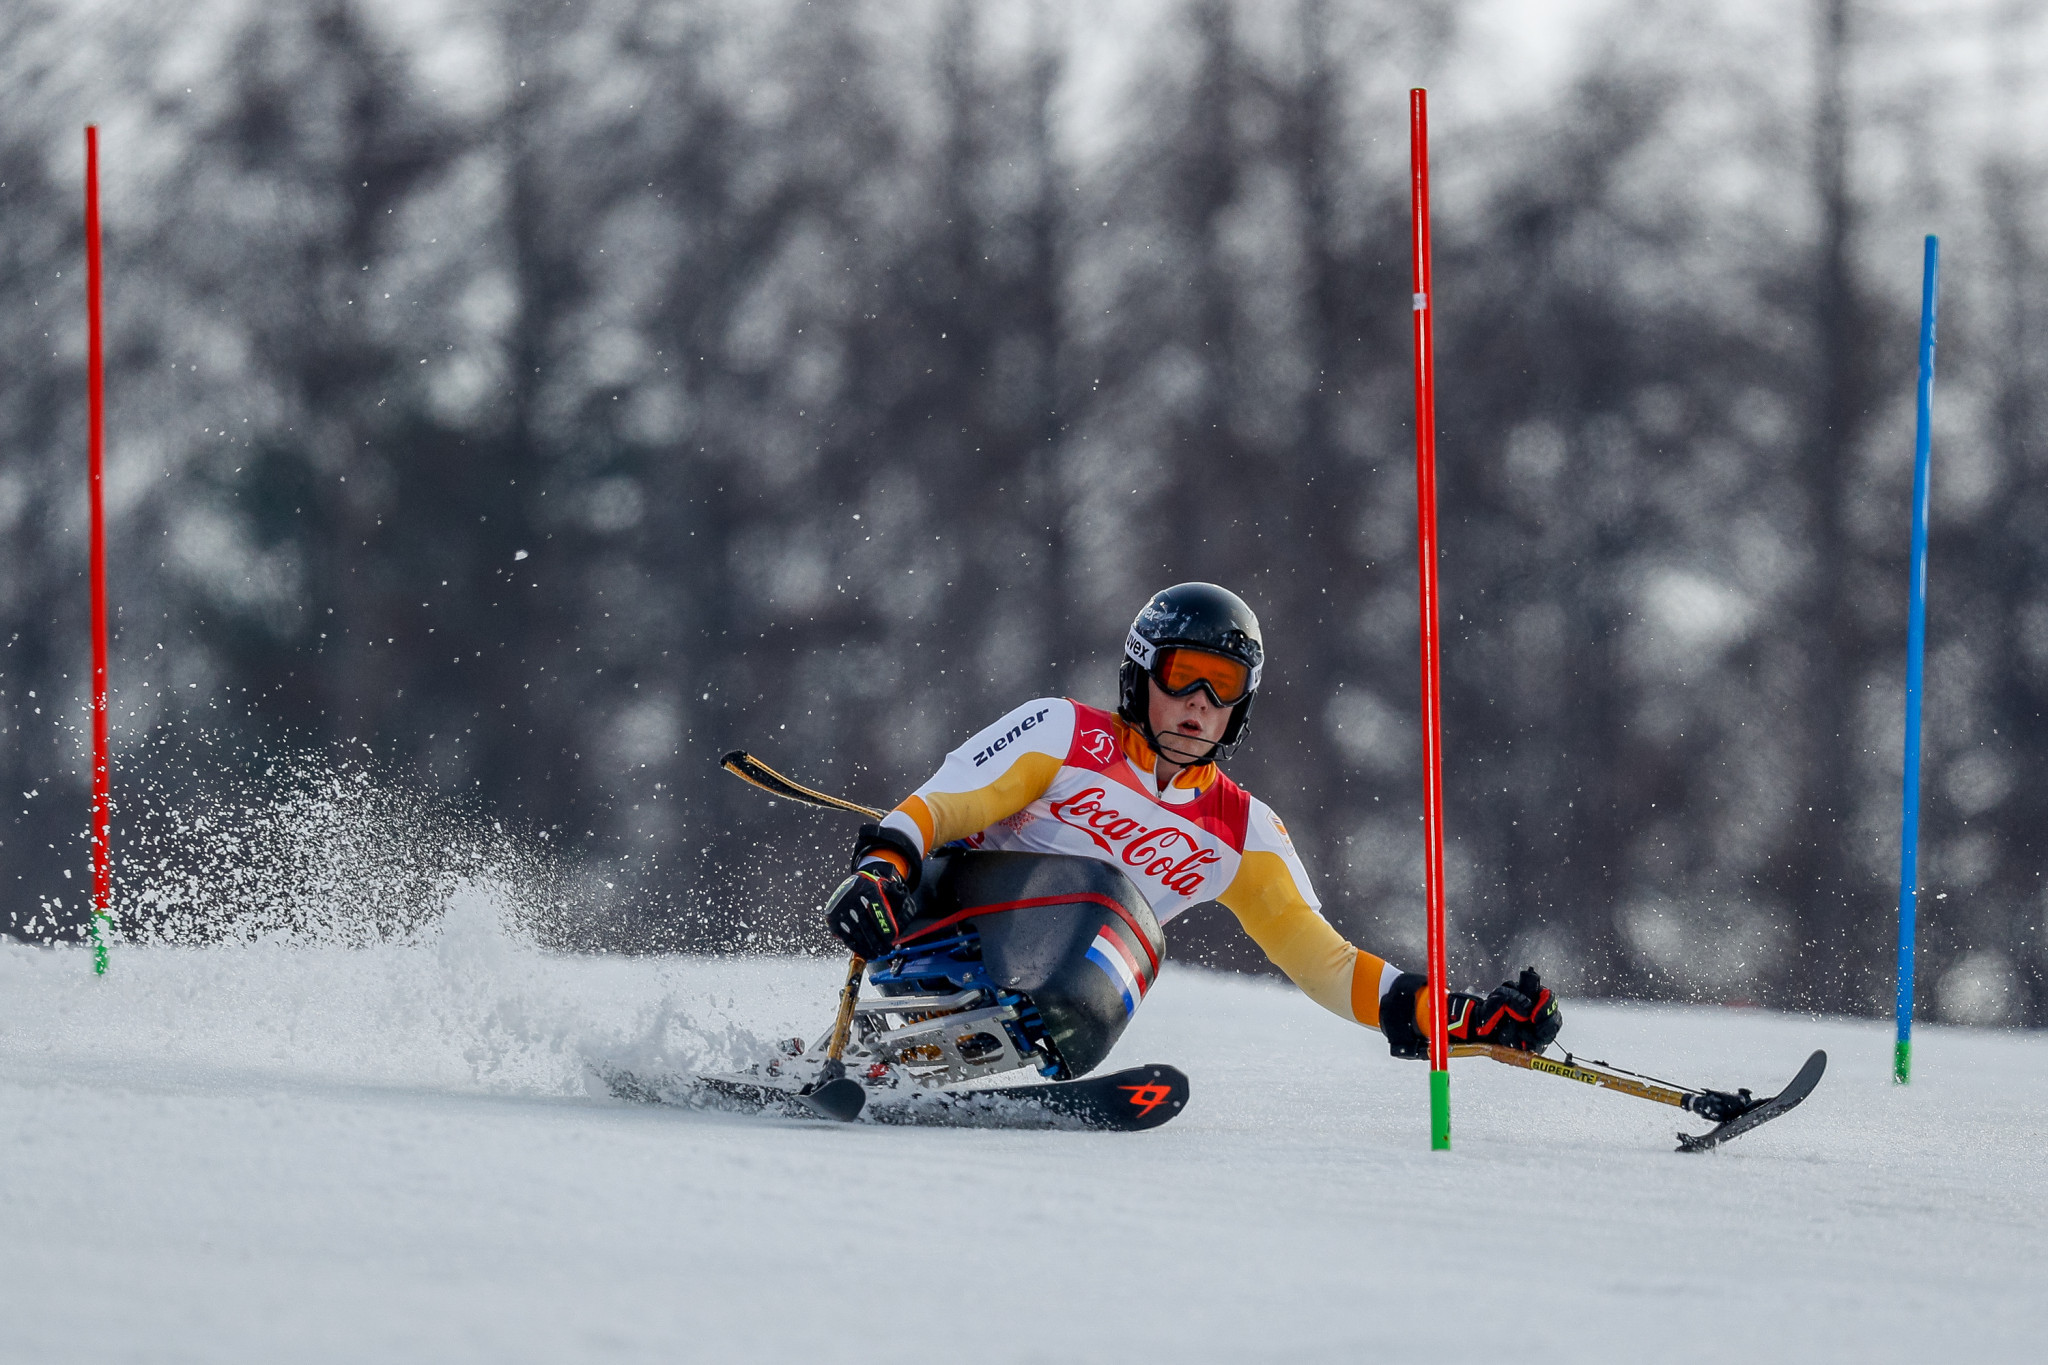 Kampschreur defends giant slalom title on opening day of World Para Alpine Skiing Championships